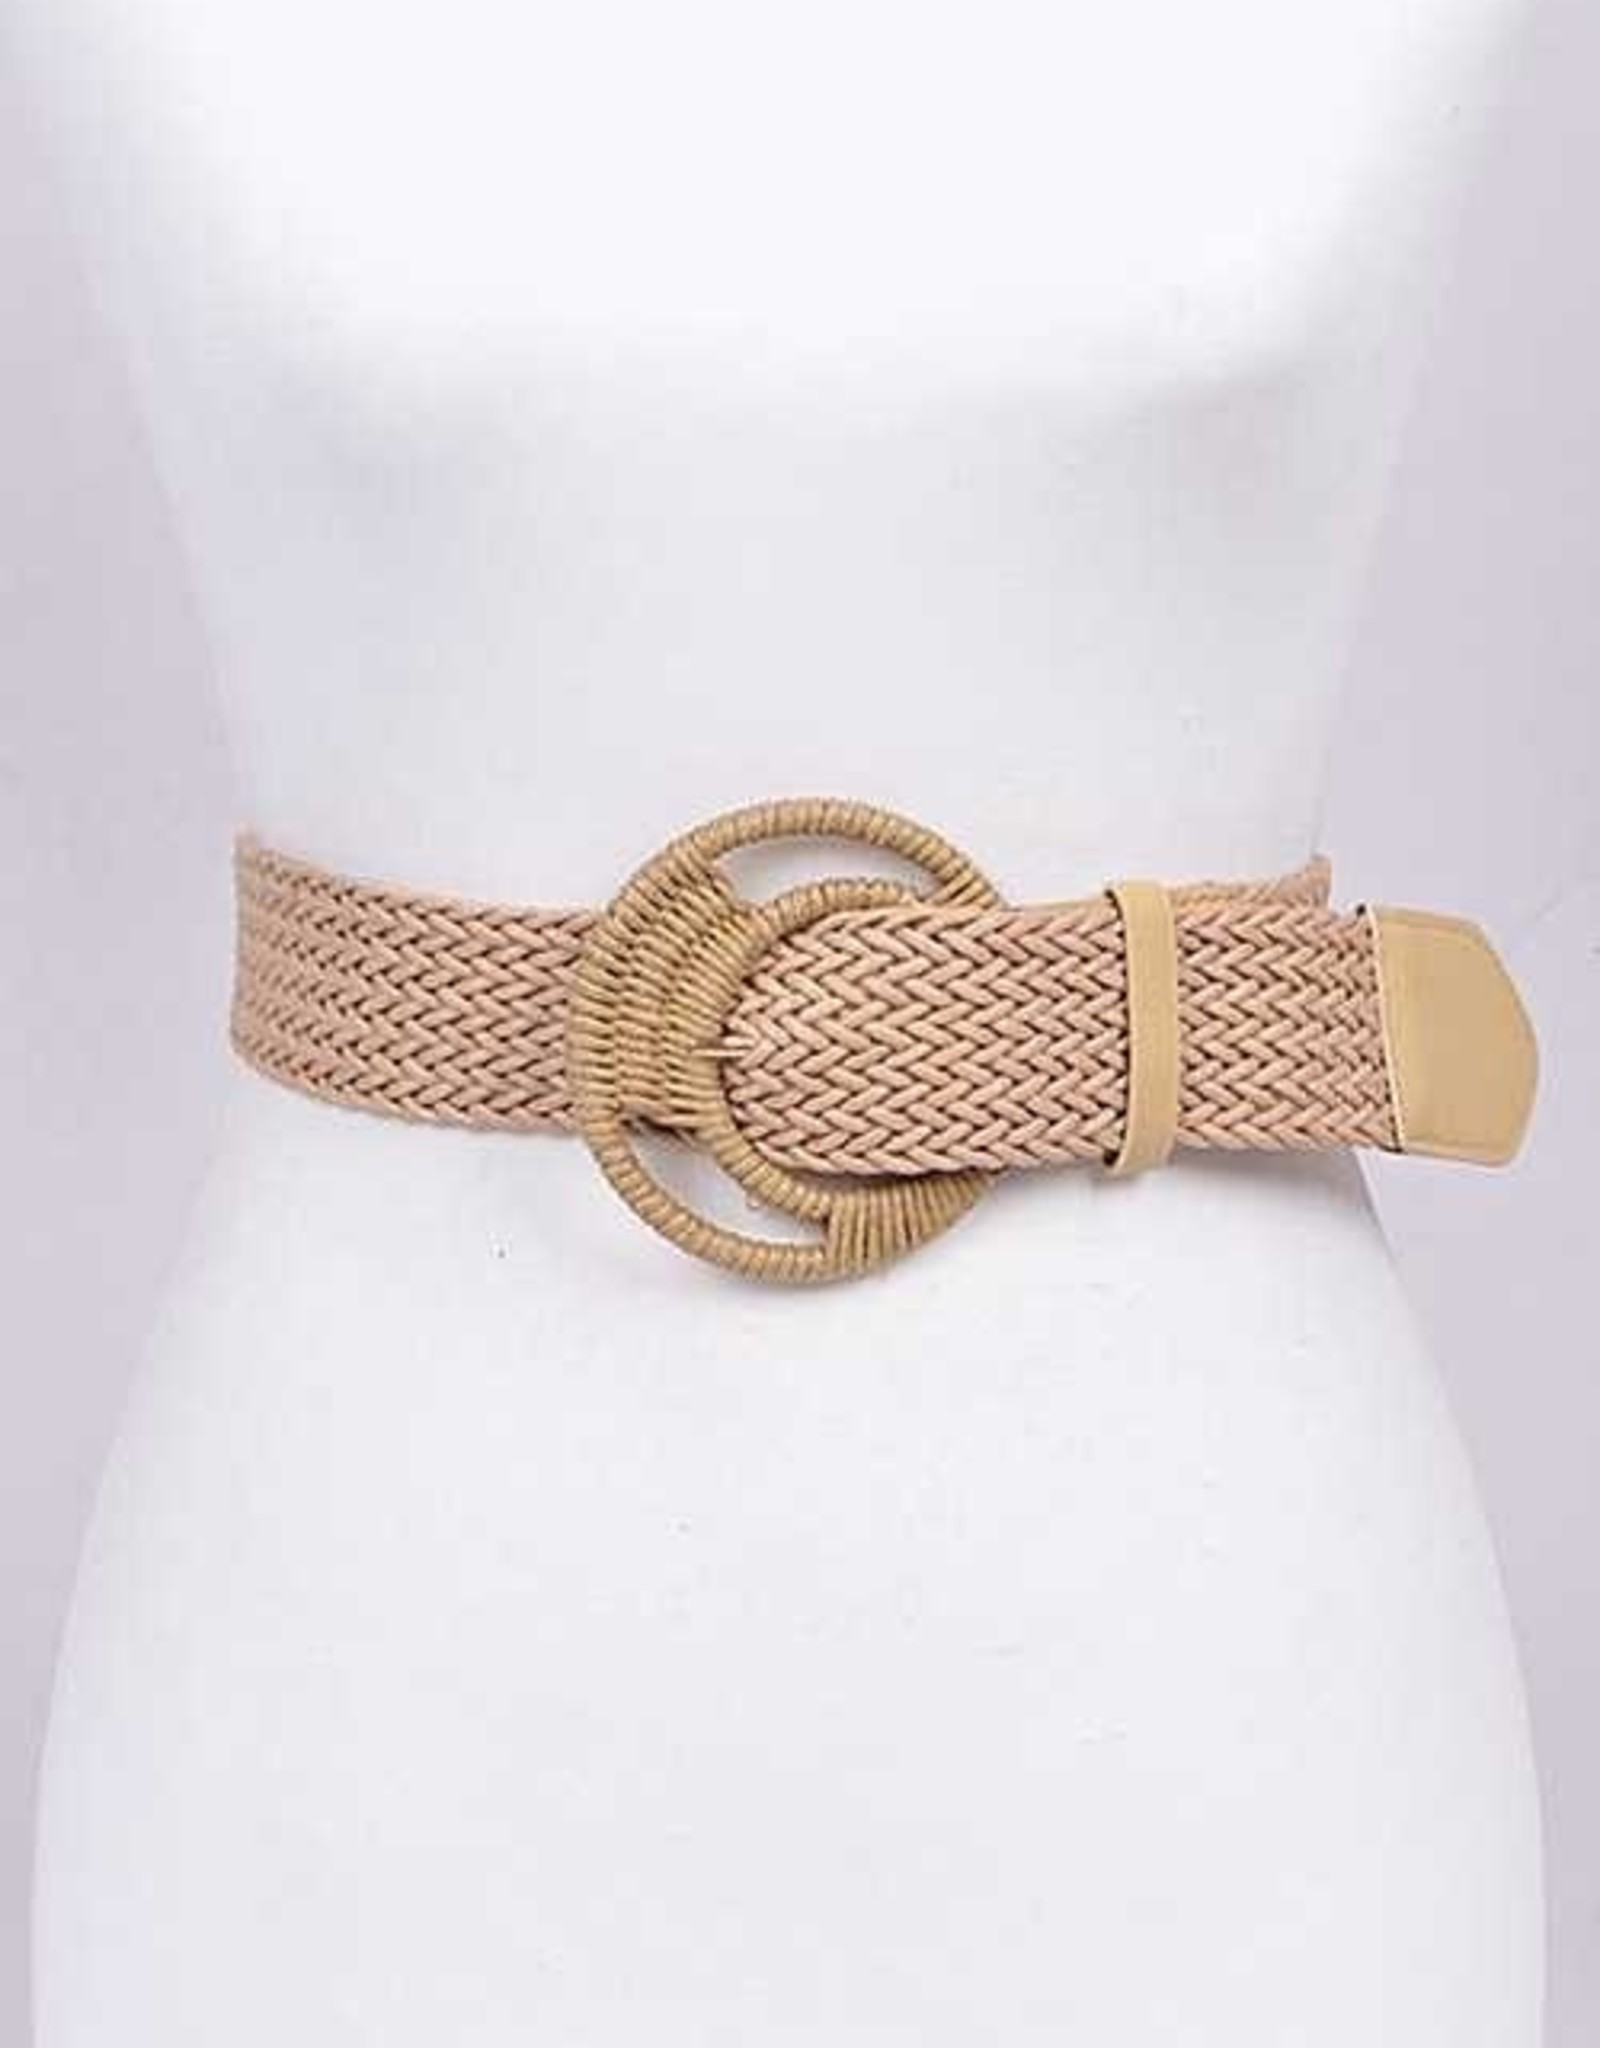 BRAIDED ICONIC BUCKLE FASHION BELT